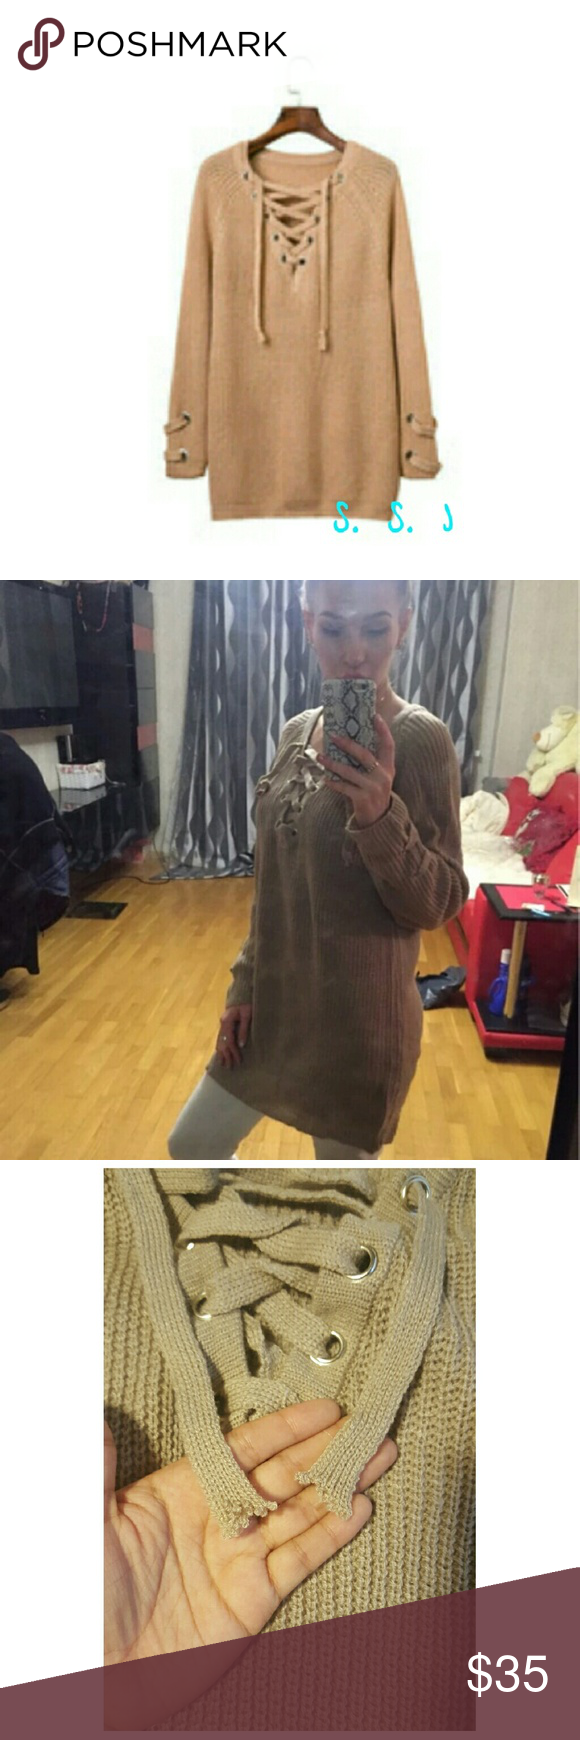 Womens lace up v neck sweater Women sexy lace up v neck sweater . Has lace-up sleeve on both sides. Is a loose knit wear super cute and comfy.  Strings have a little loose thread other than that it's super cute! boutique Sweaters V-Necks